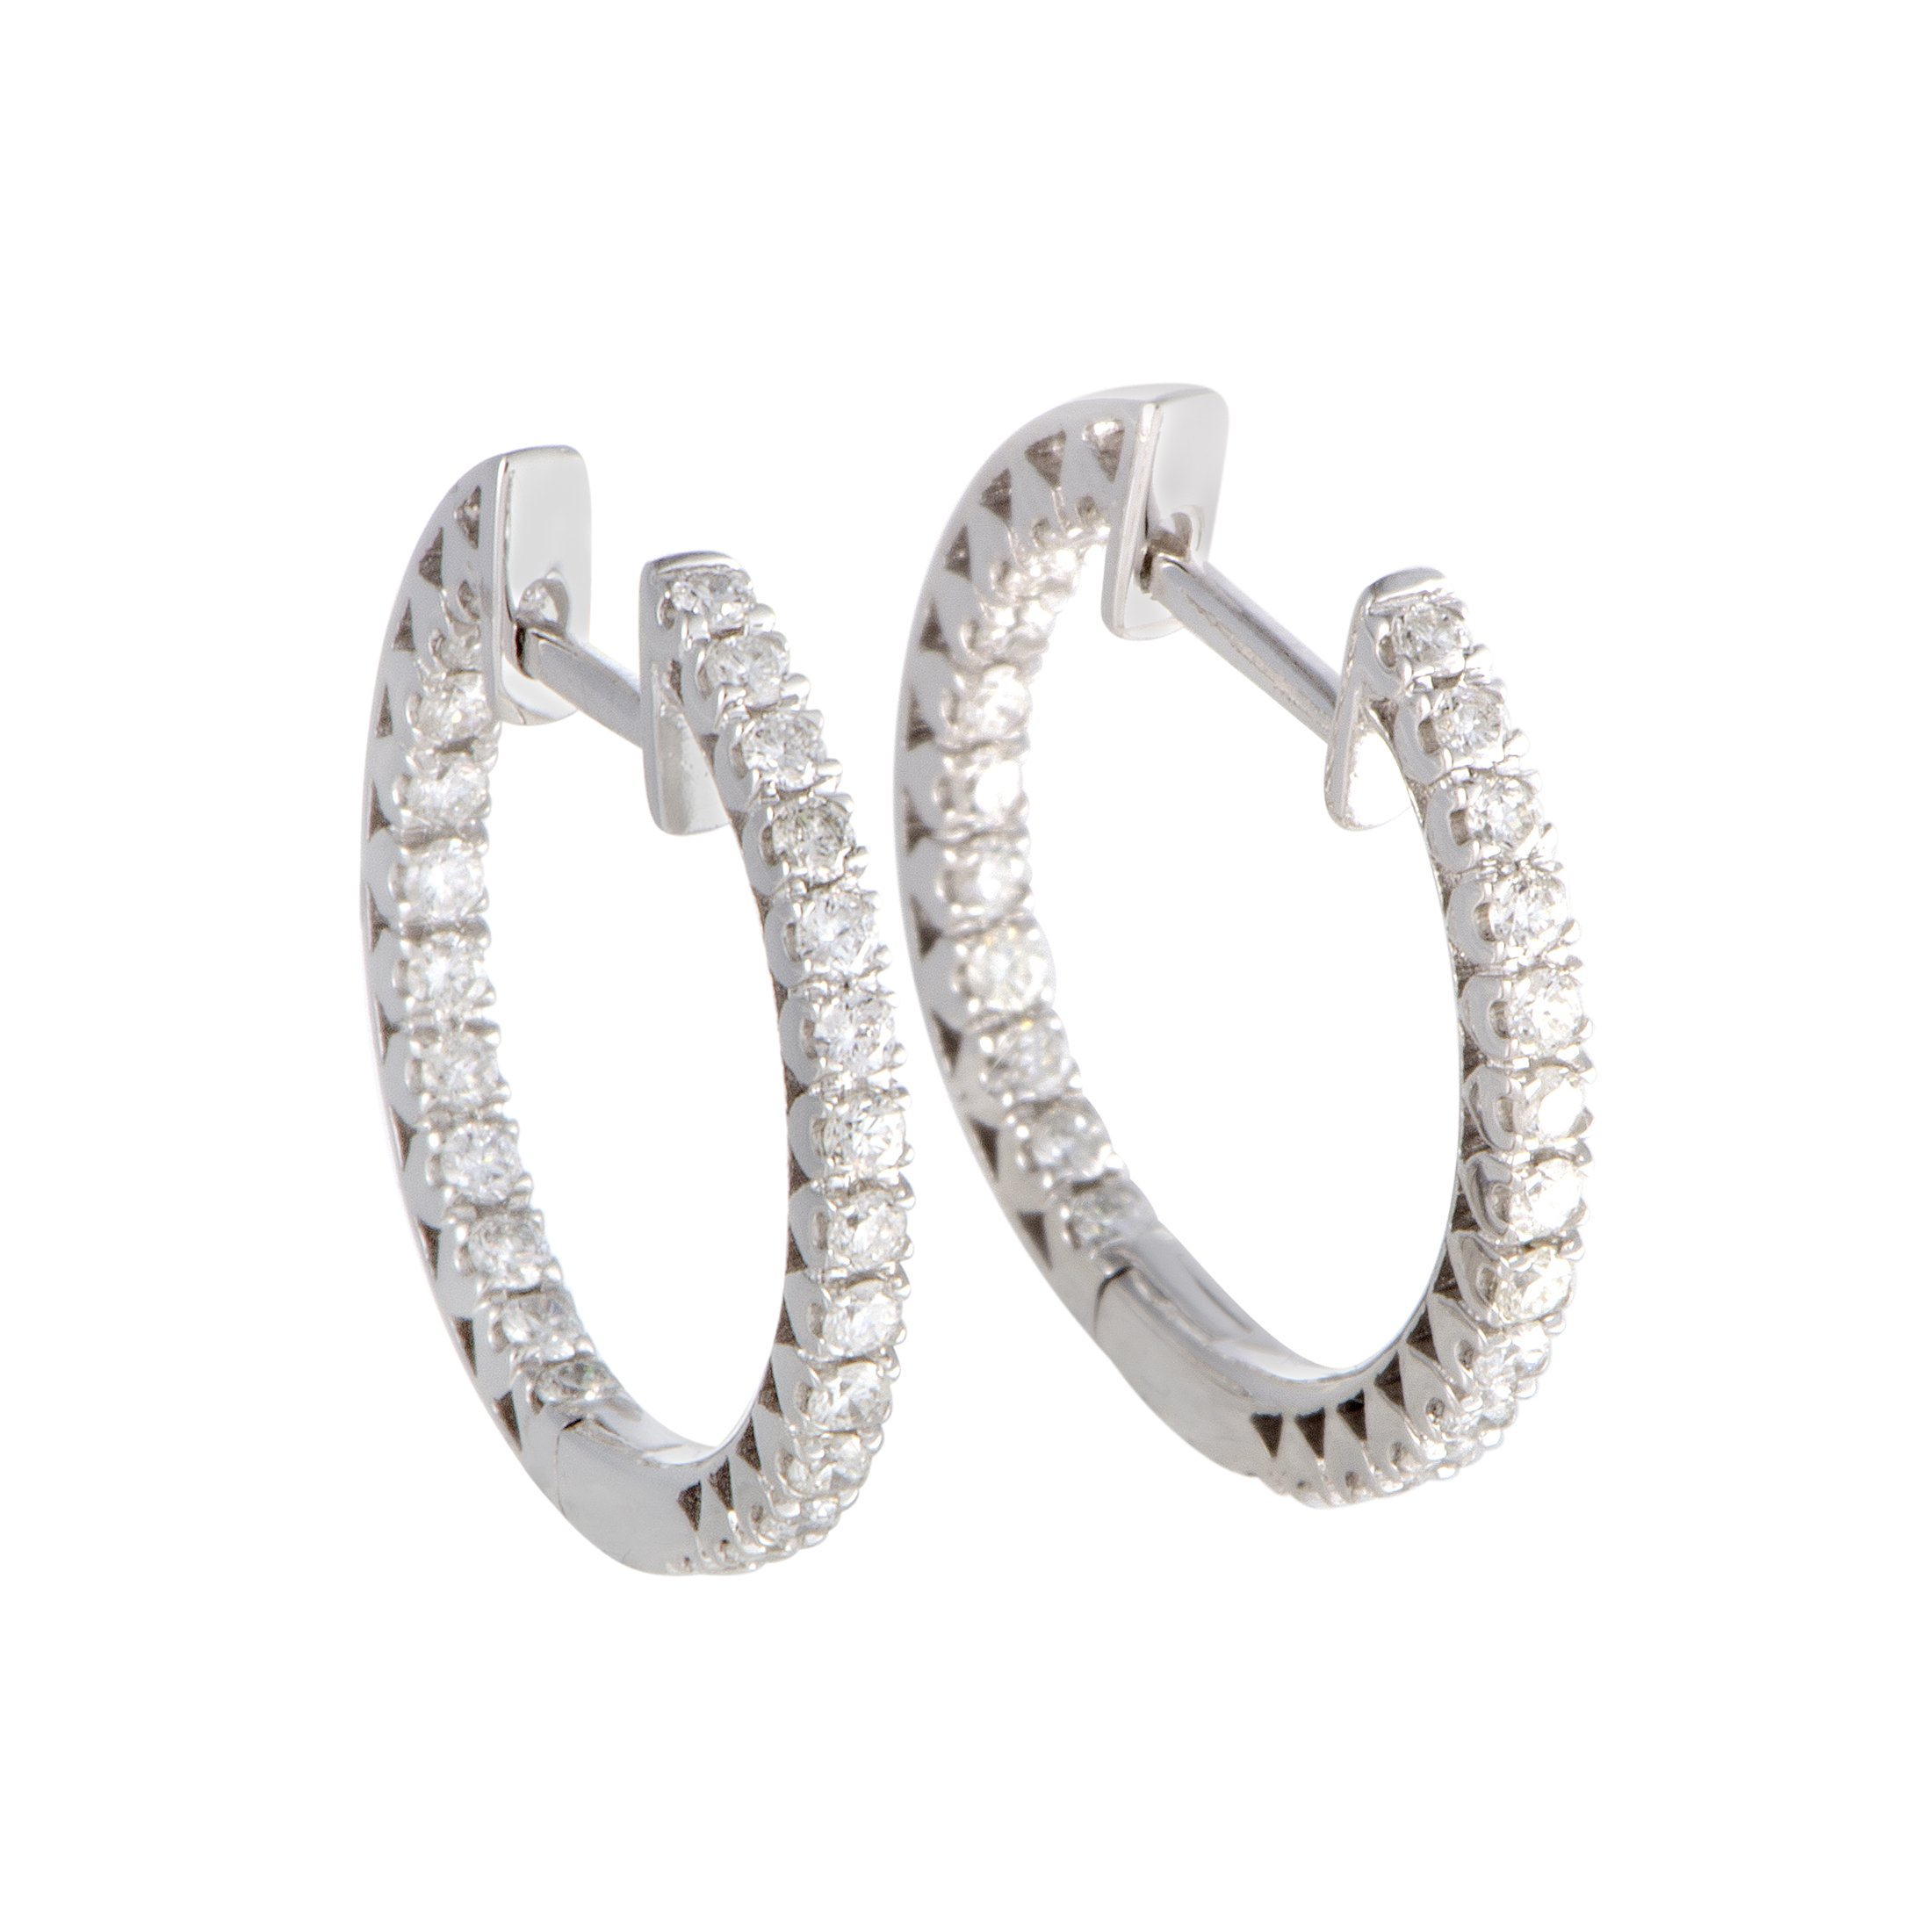 Stunning 0.63'' Diamond Hoop Earrings in 14K White Gold; 0.66 Carats of White Diamonds (G Color, SI1-SI2 Clarity) (white-gold)